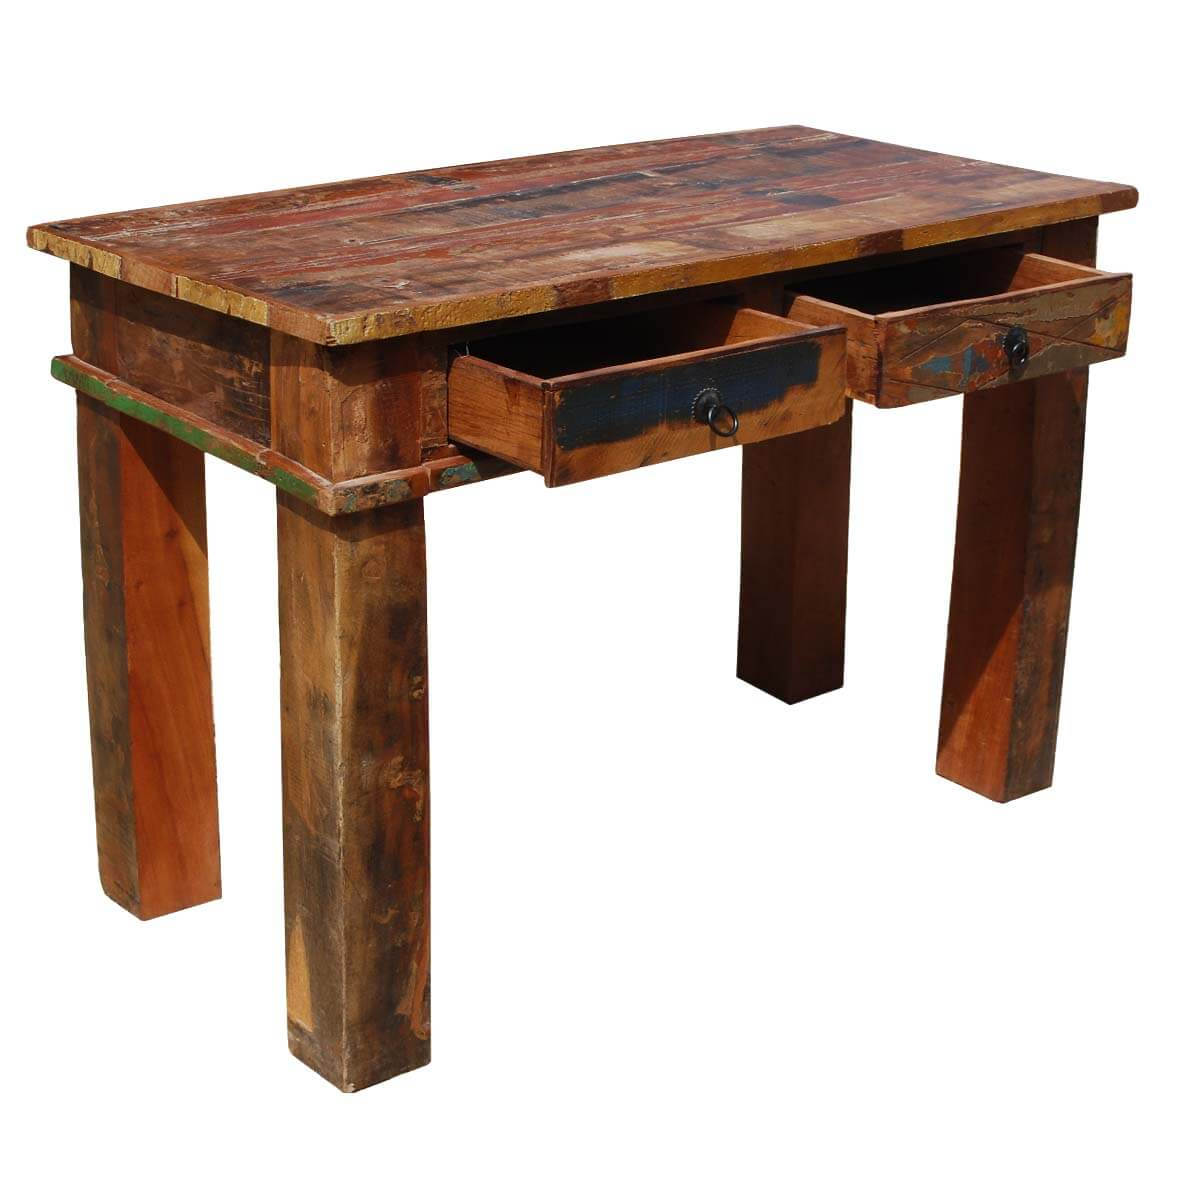 Foyer Table Distressed : Rustic distressed reclaimed wood console hall sofa